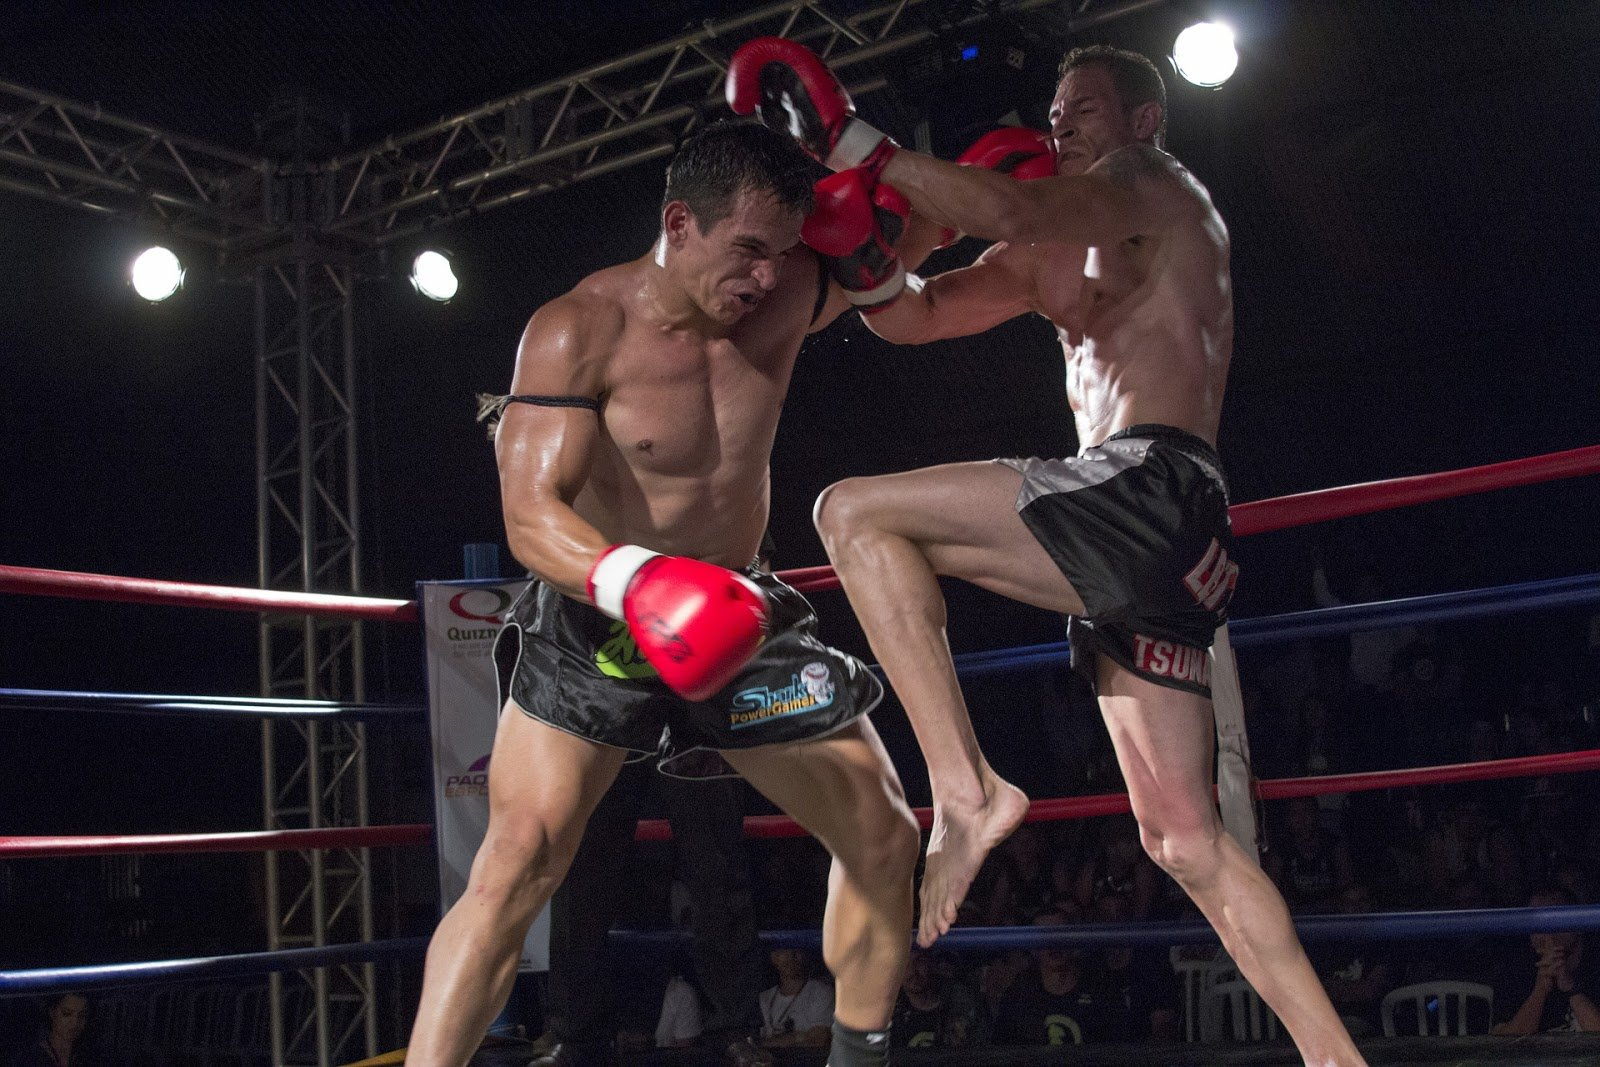 muay thai rules